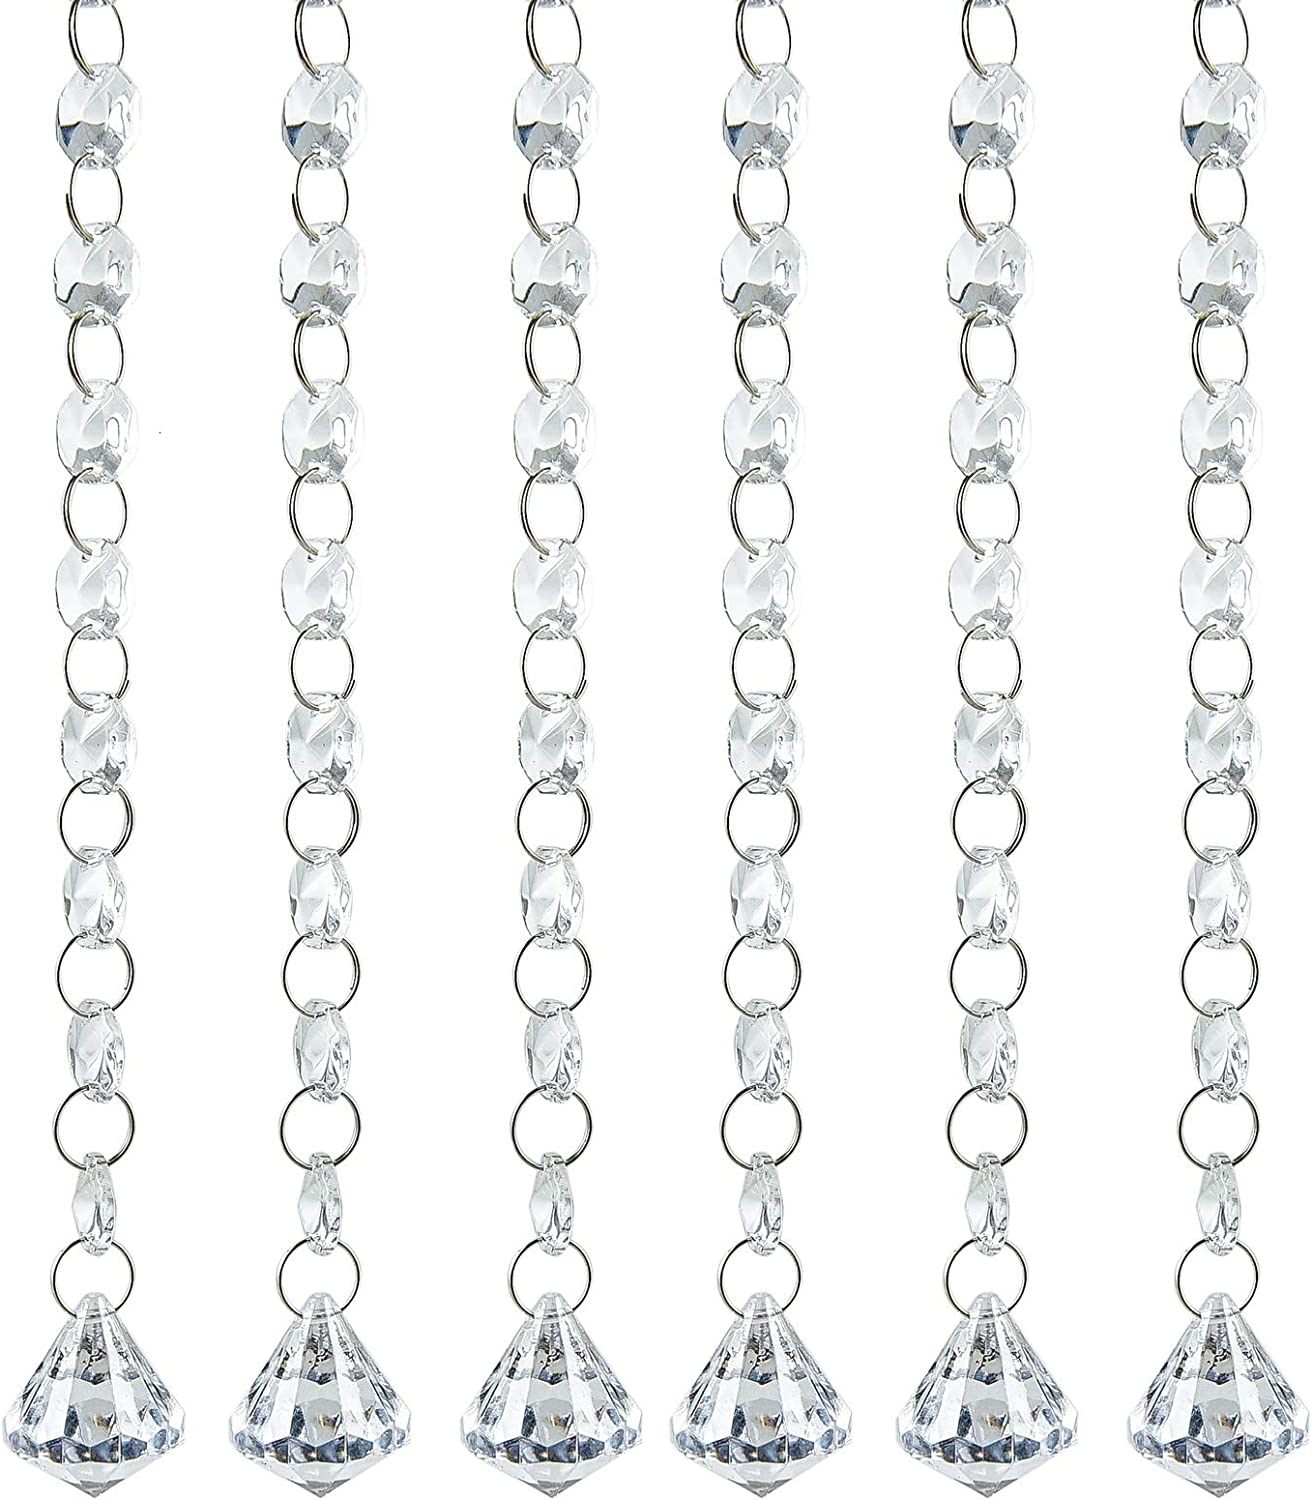 Timoo 20 FT Crystal Chandelier Beads Clear Glass Crystal Octagon Beads Chain Garland Trim for Wedding Party Bar and DIY Craft Projects